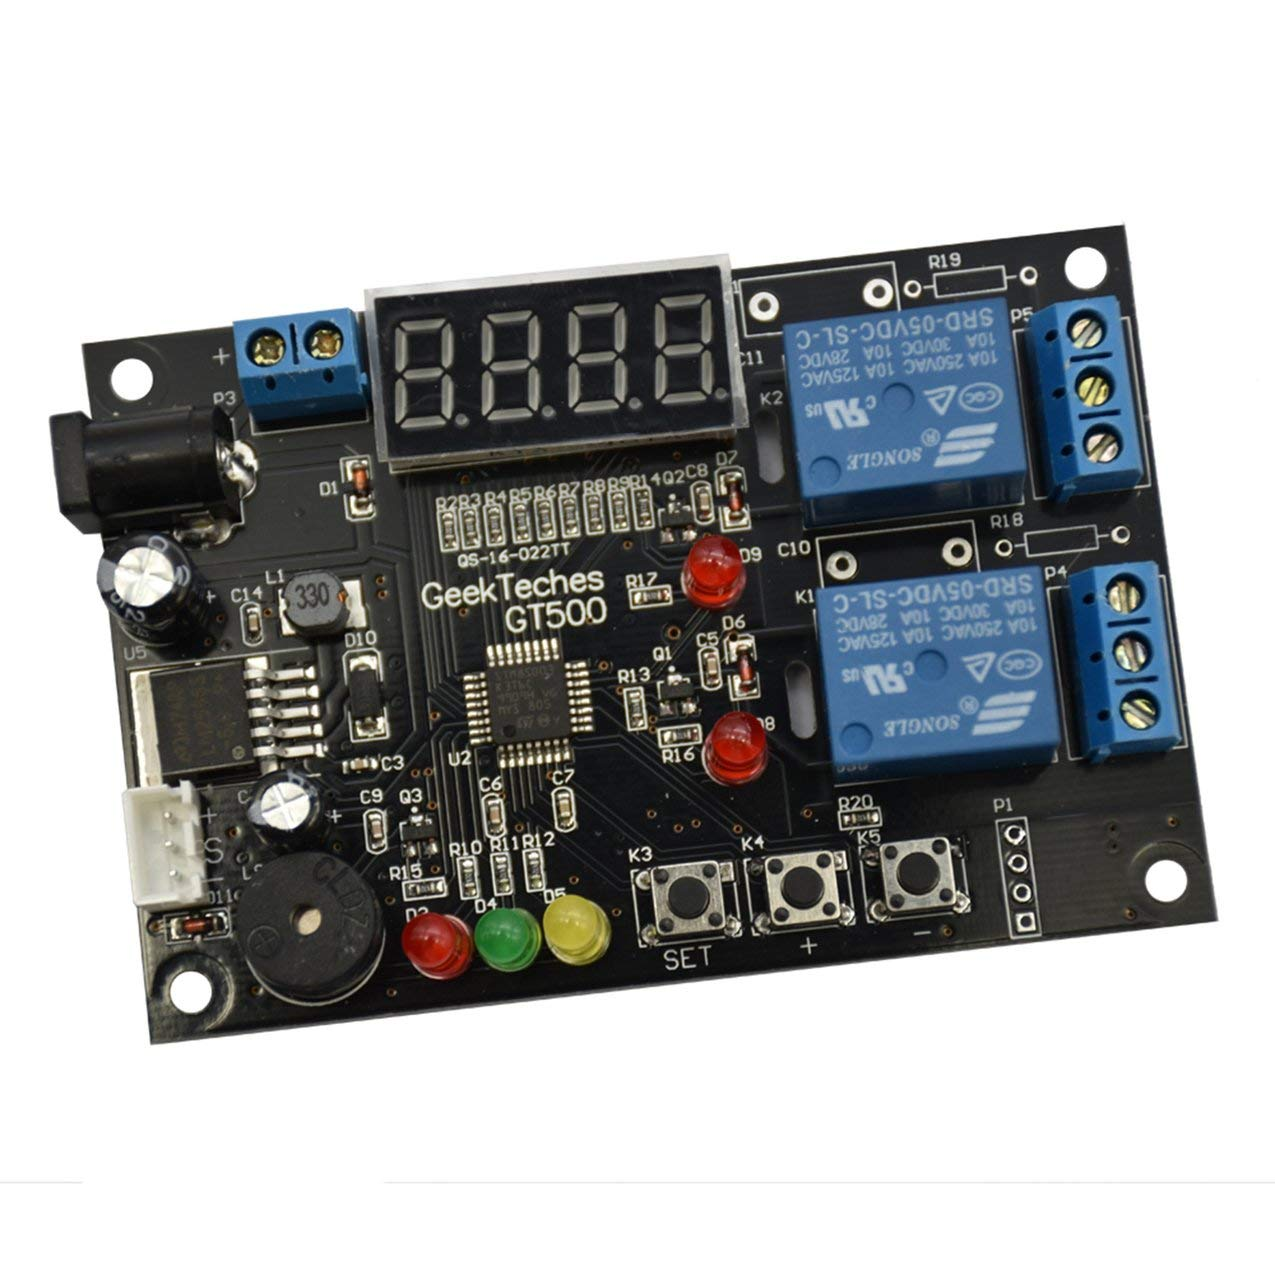 Black Gt500 1 Set Temperature And Humidity Control Module With Sensor Y9D4